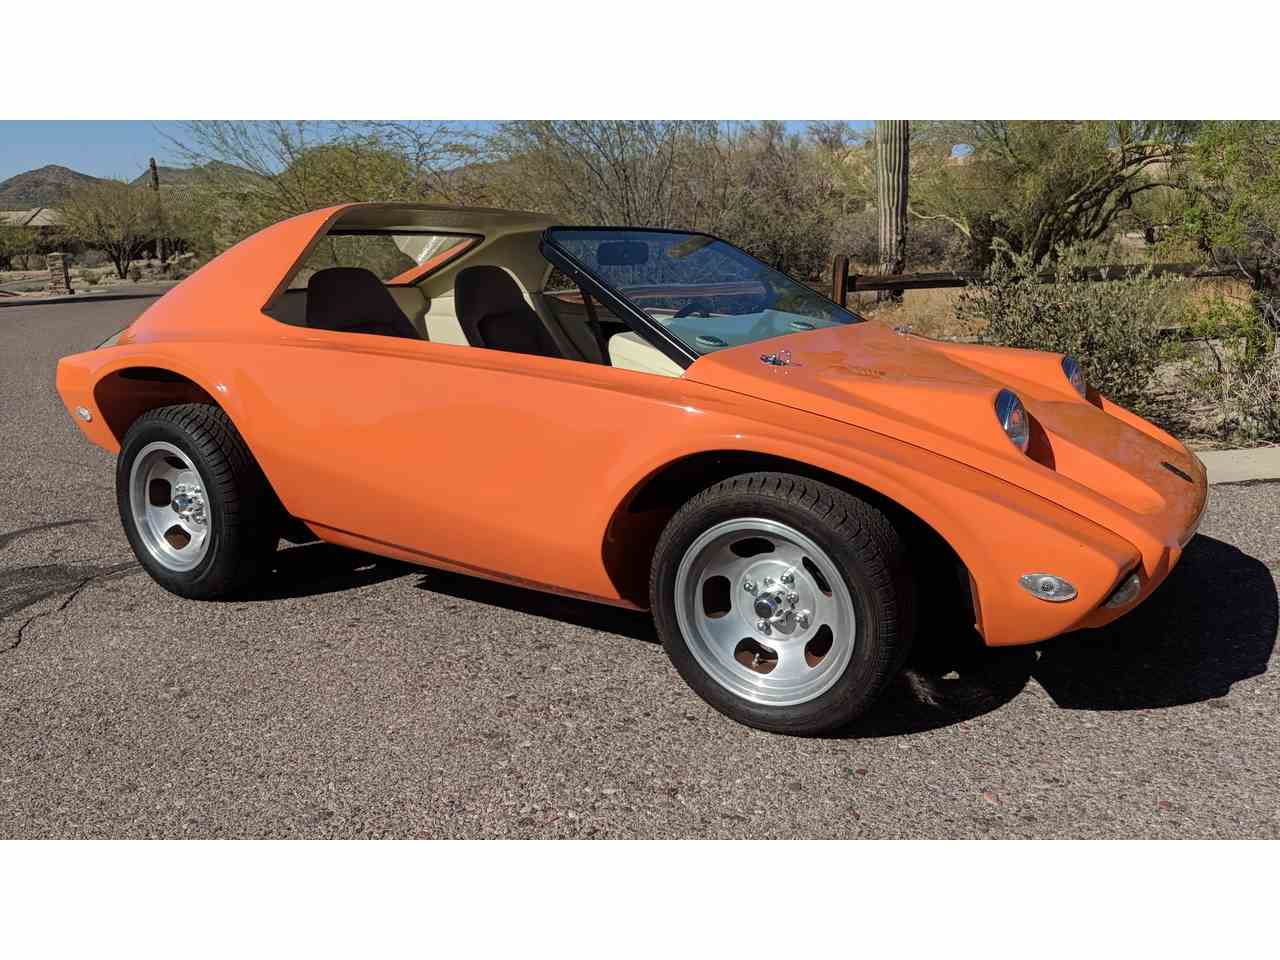 Large Picture of Classic '70 Volkswagen Baja Bug located in Arizona - $11,900.00 Offered by a Private Seller - MXZ5